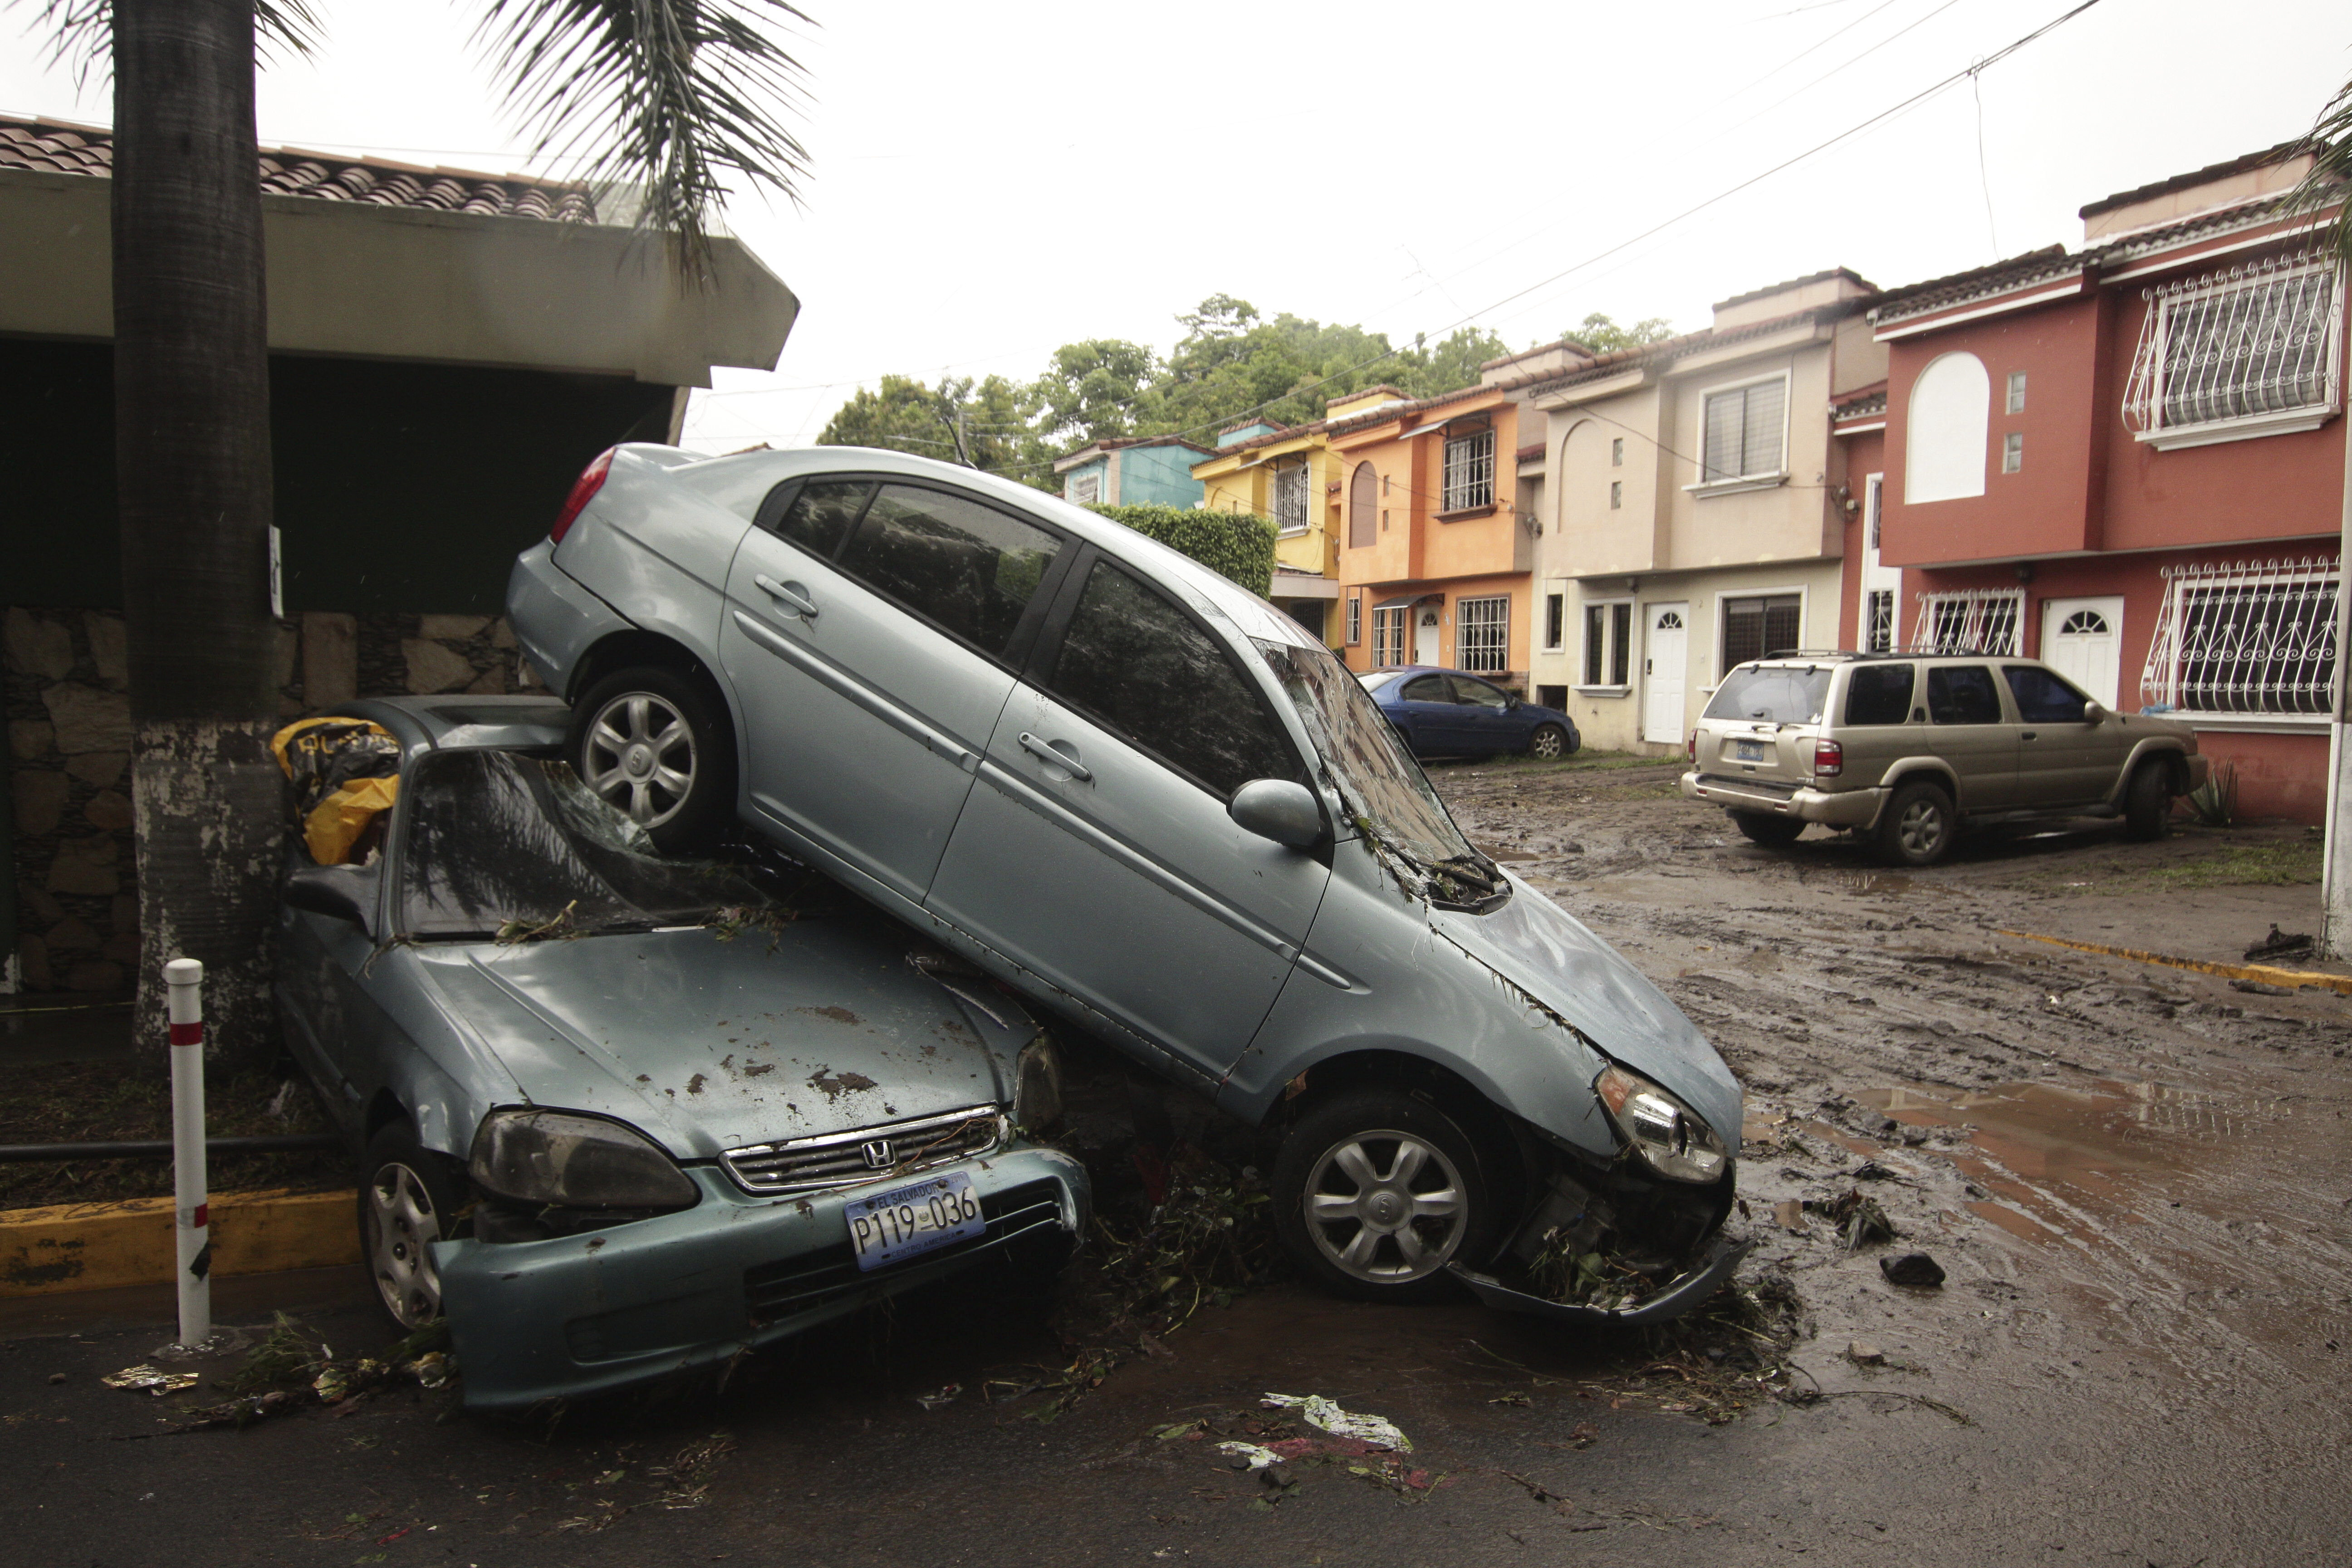 Vehicles stand damaged by an Acelhuate River flash flood at a neighborhood in San Salvador, El Salvador, Sunday, May 31, 2020. According to the Ministry of the Interior, at least seven people died across the country after two days of heavy rains. Photo: AP